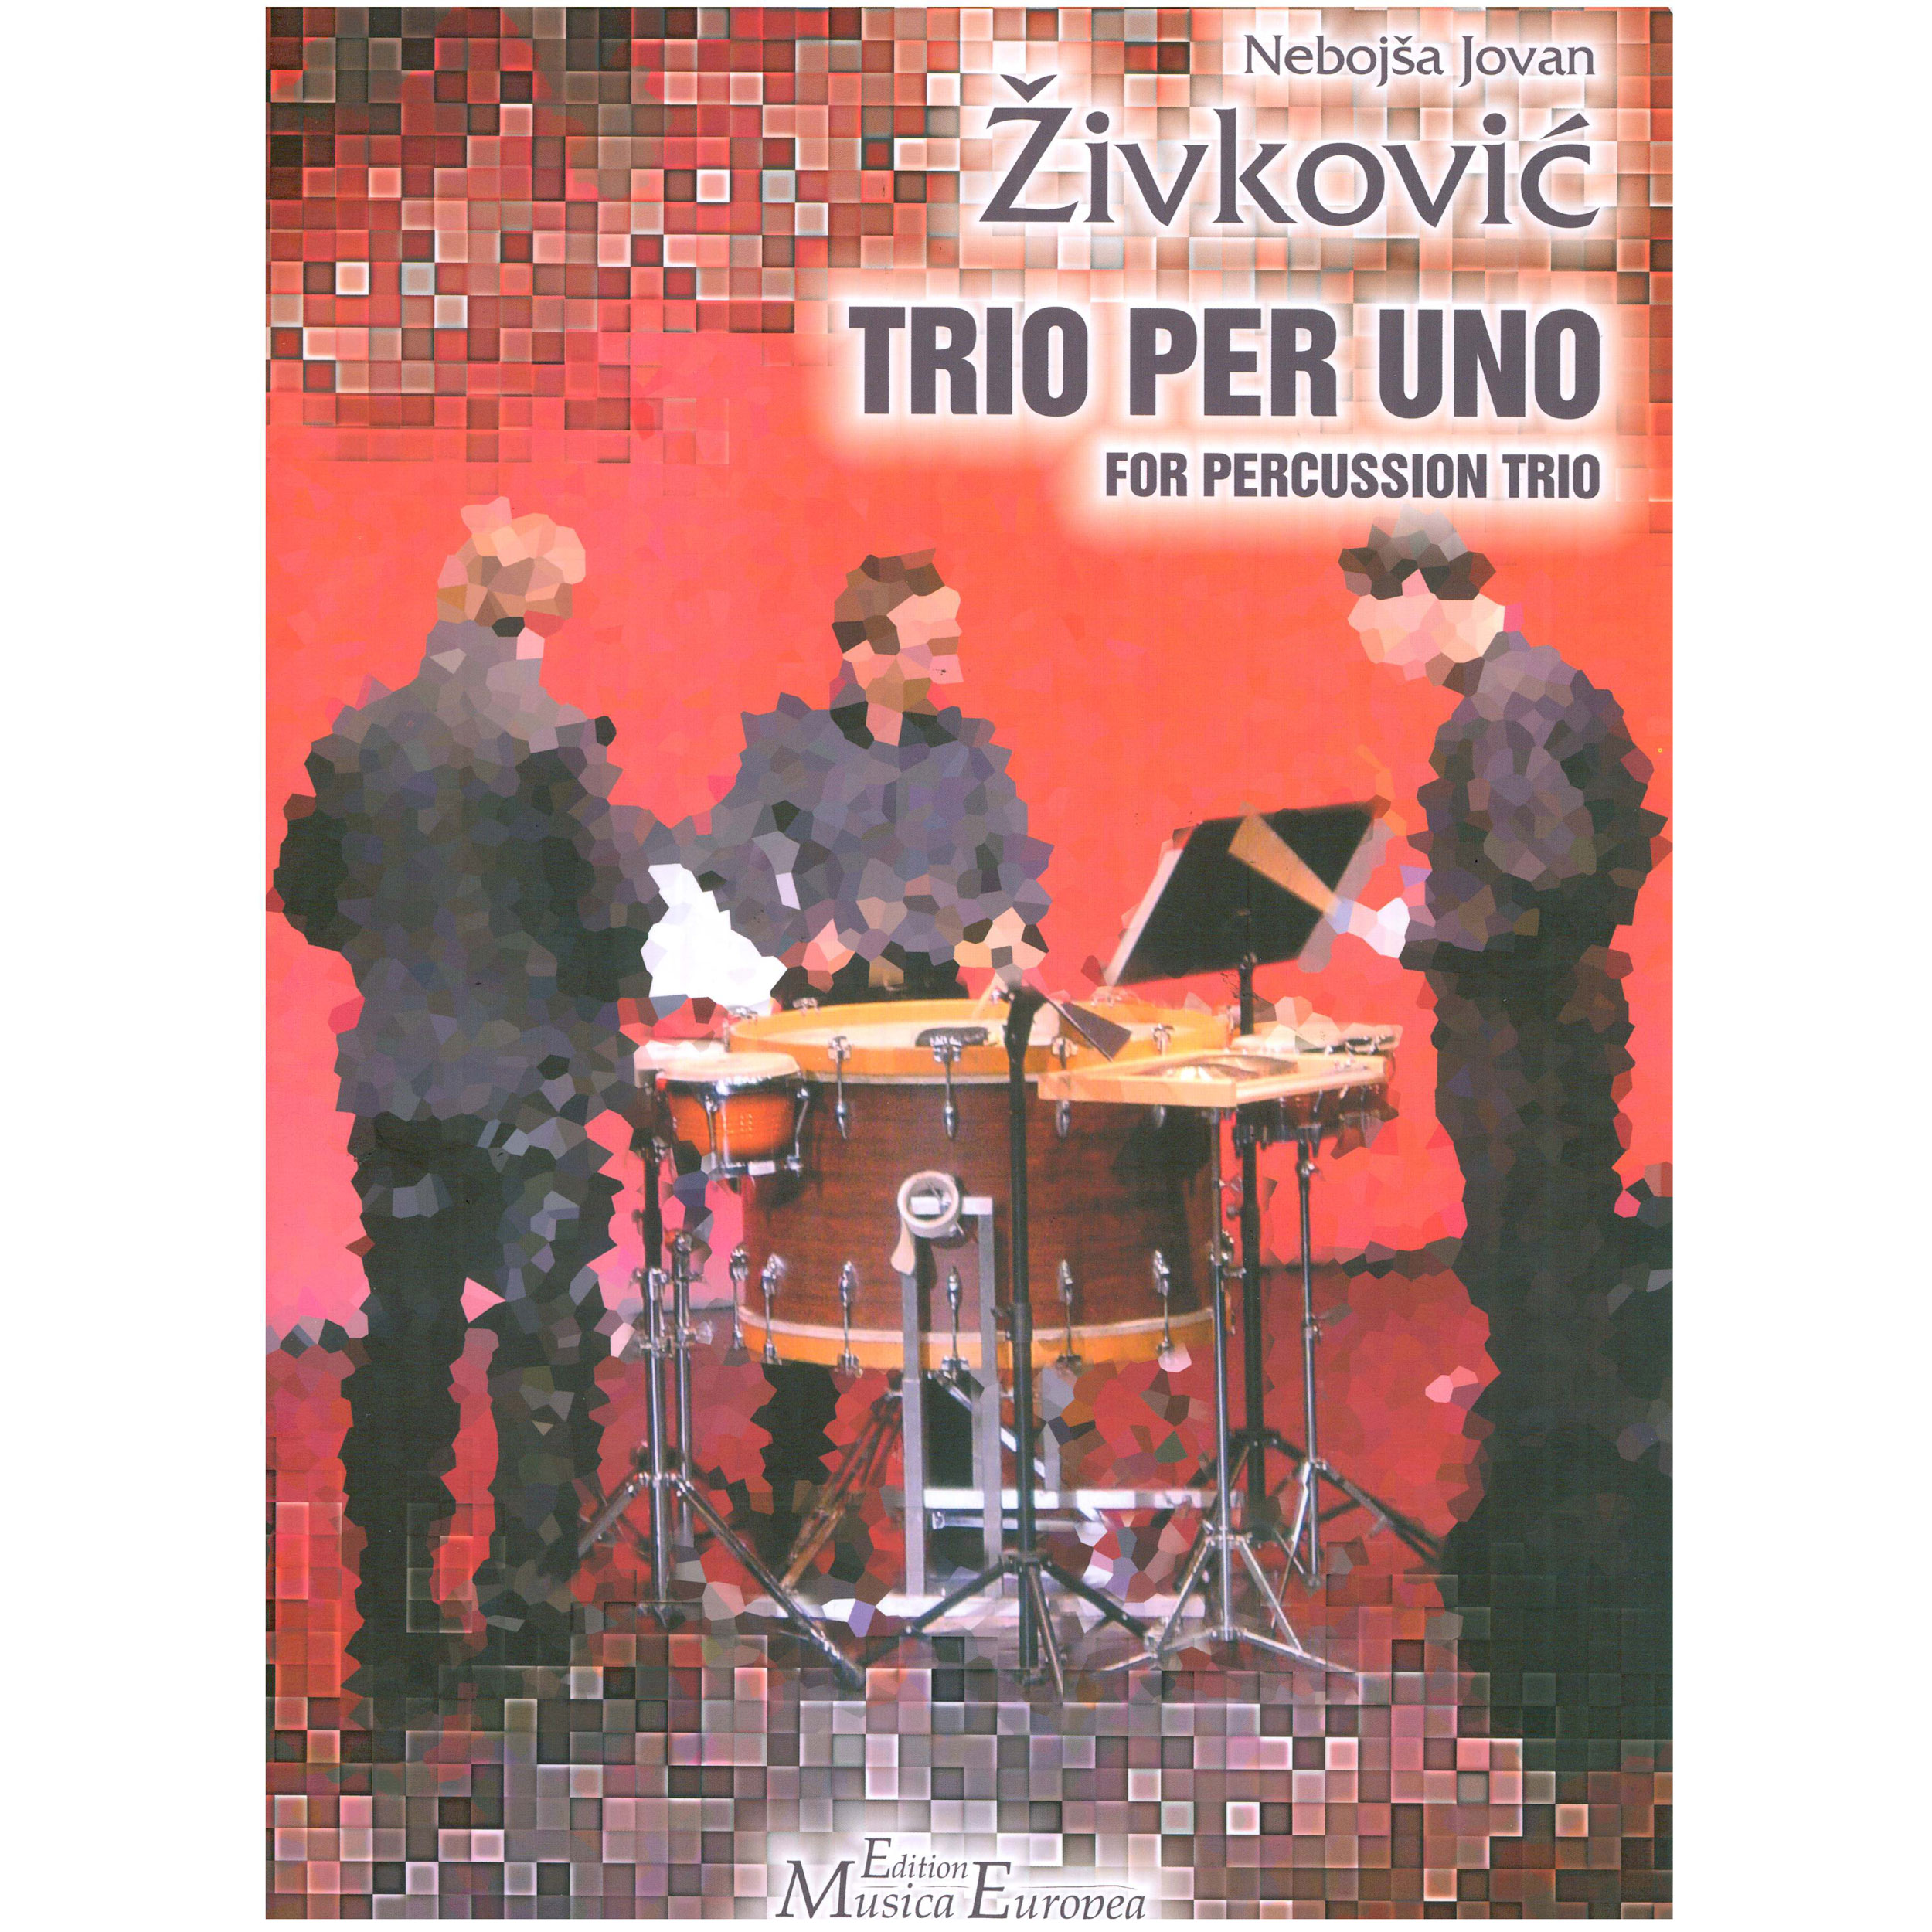 Trio Per Uno by Nebojsa Jovan Zivkovic (Score and Parts)